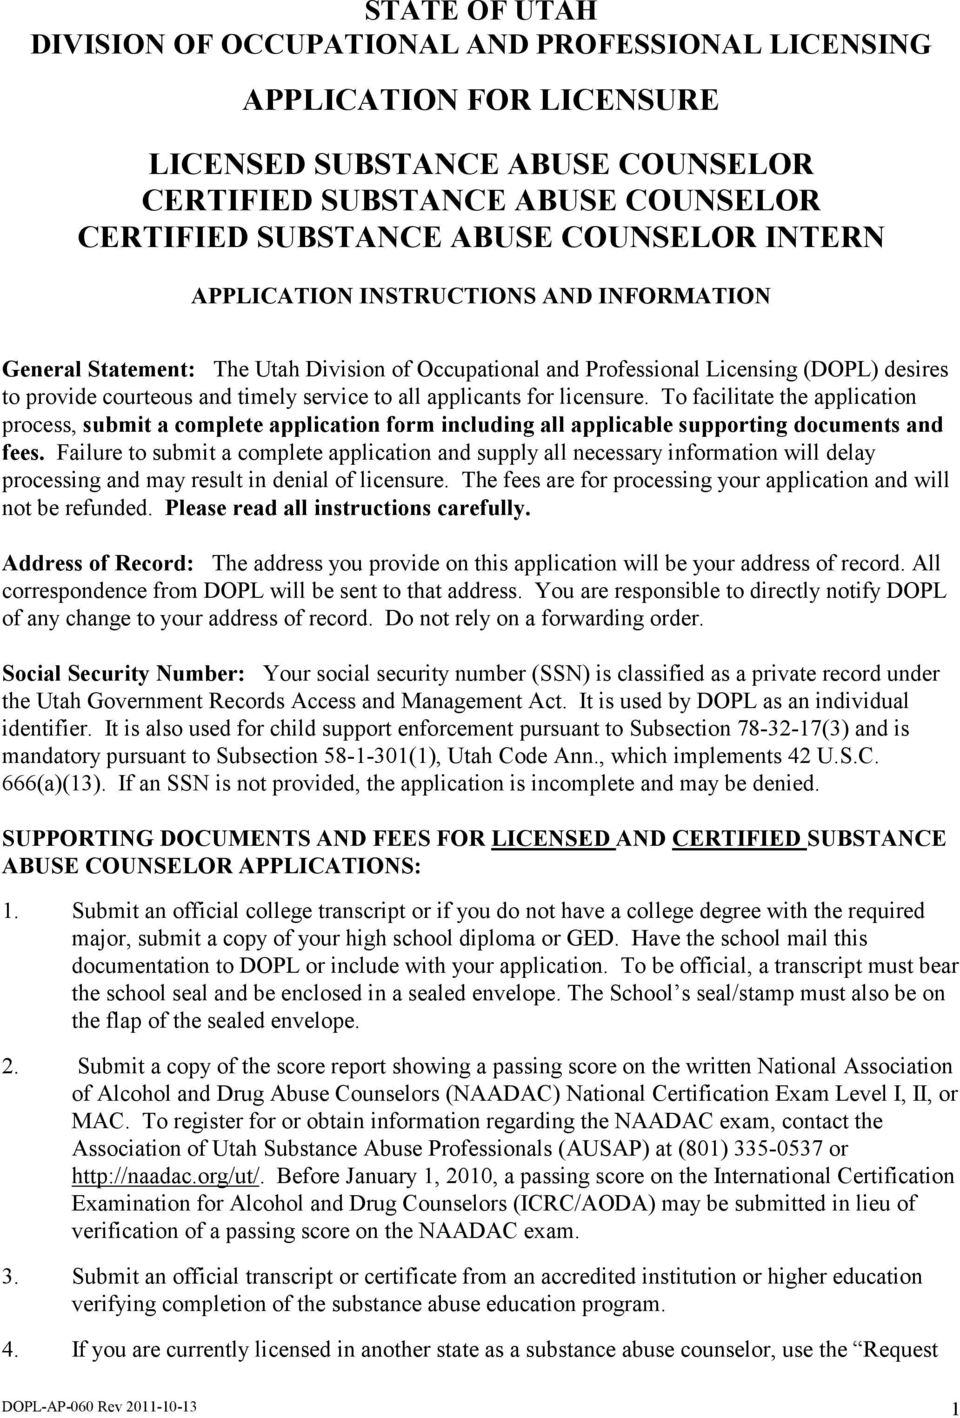 Application For Licensure Licensed Substance Abuse Counselor